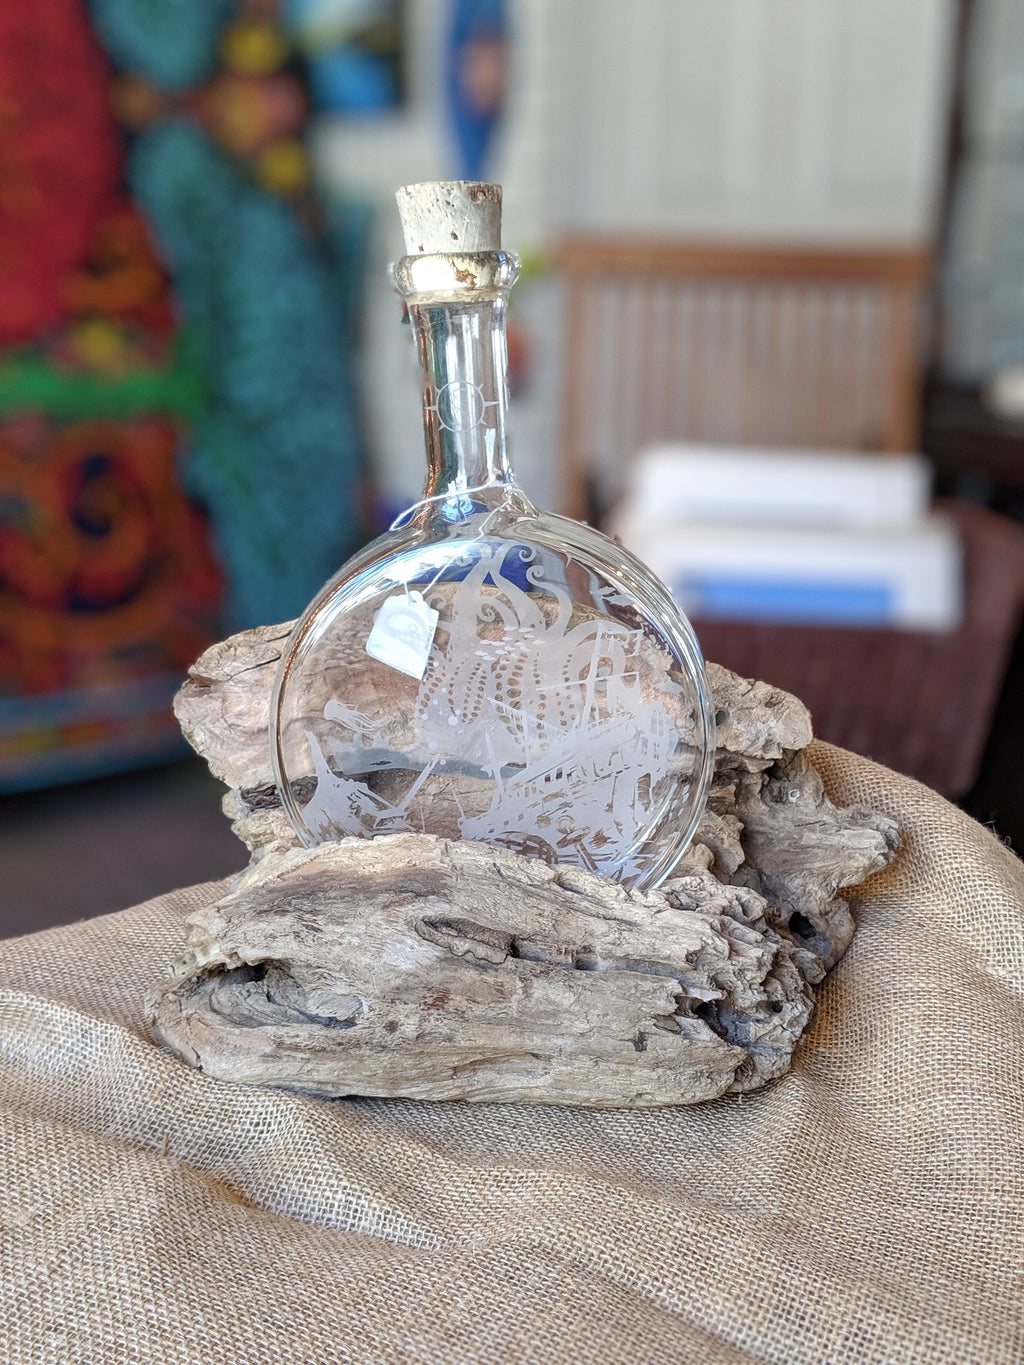 Hand-blown Liquor Decanter Etched and set in Outer Banks driftwood